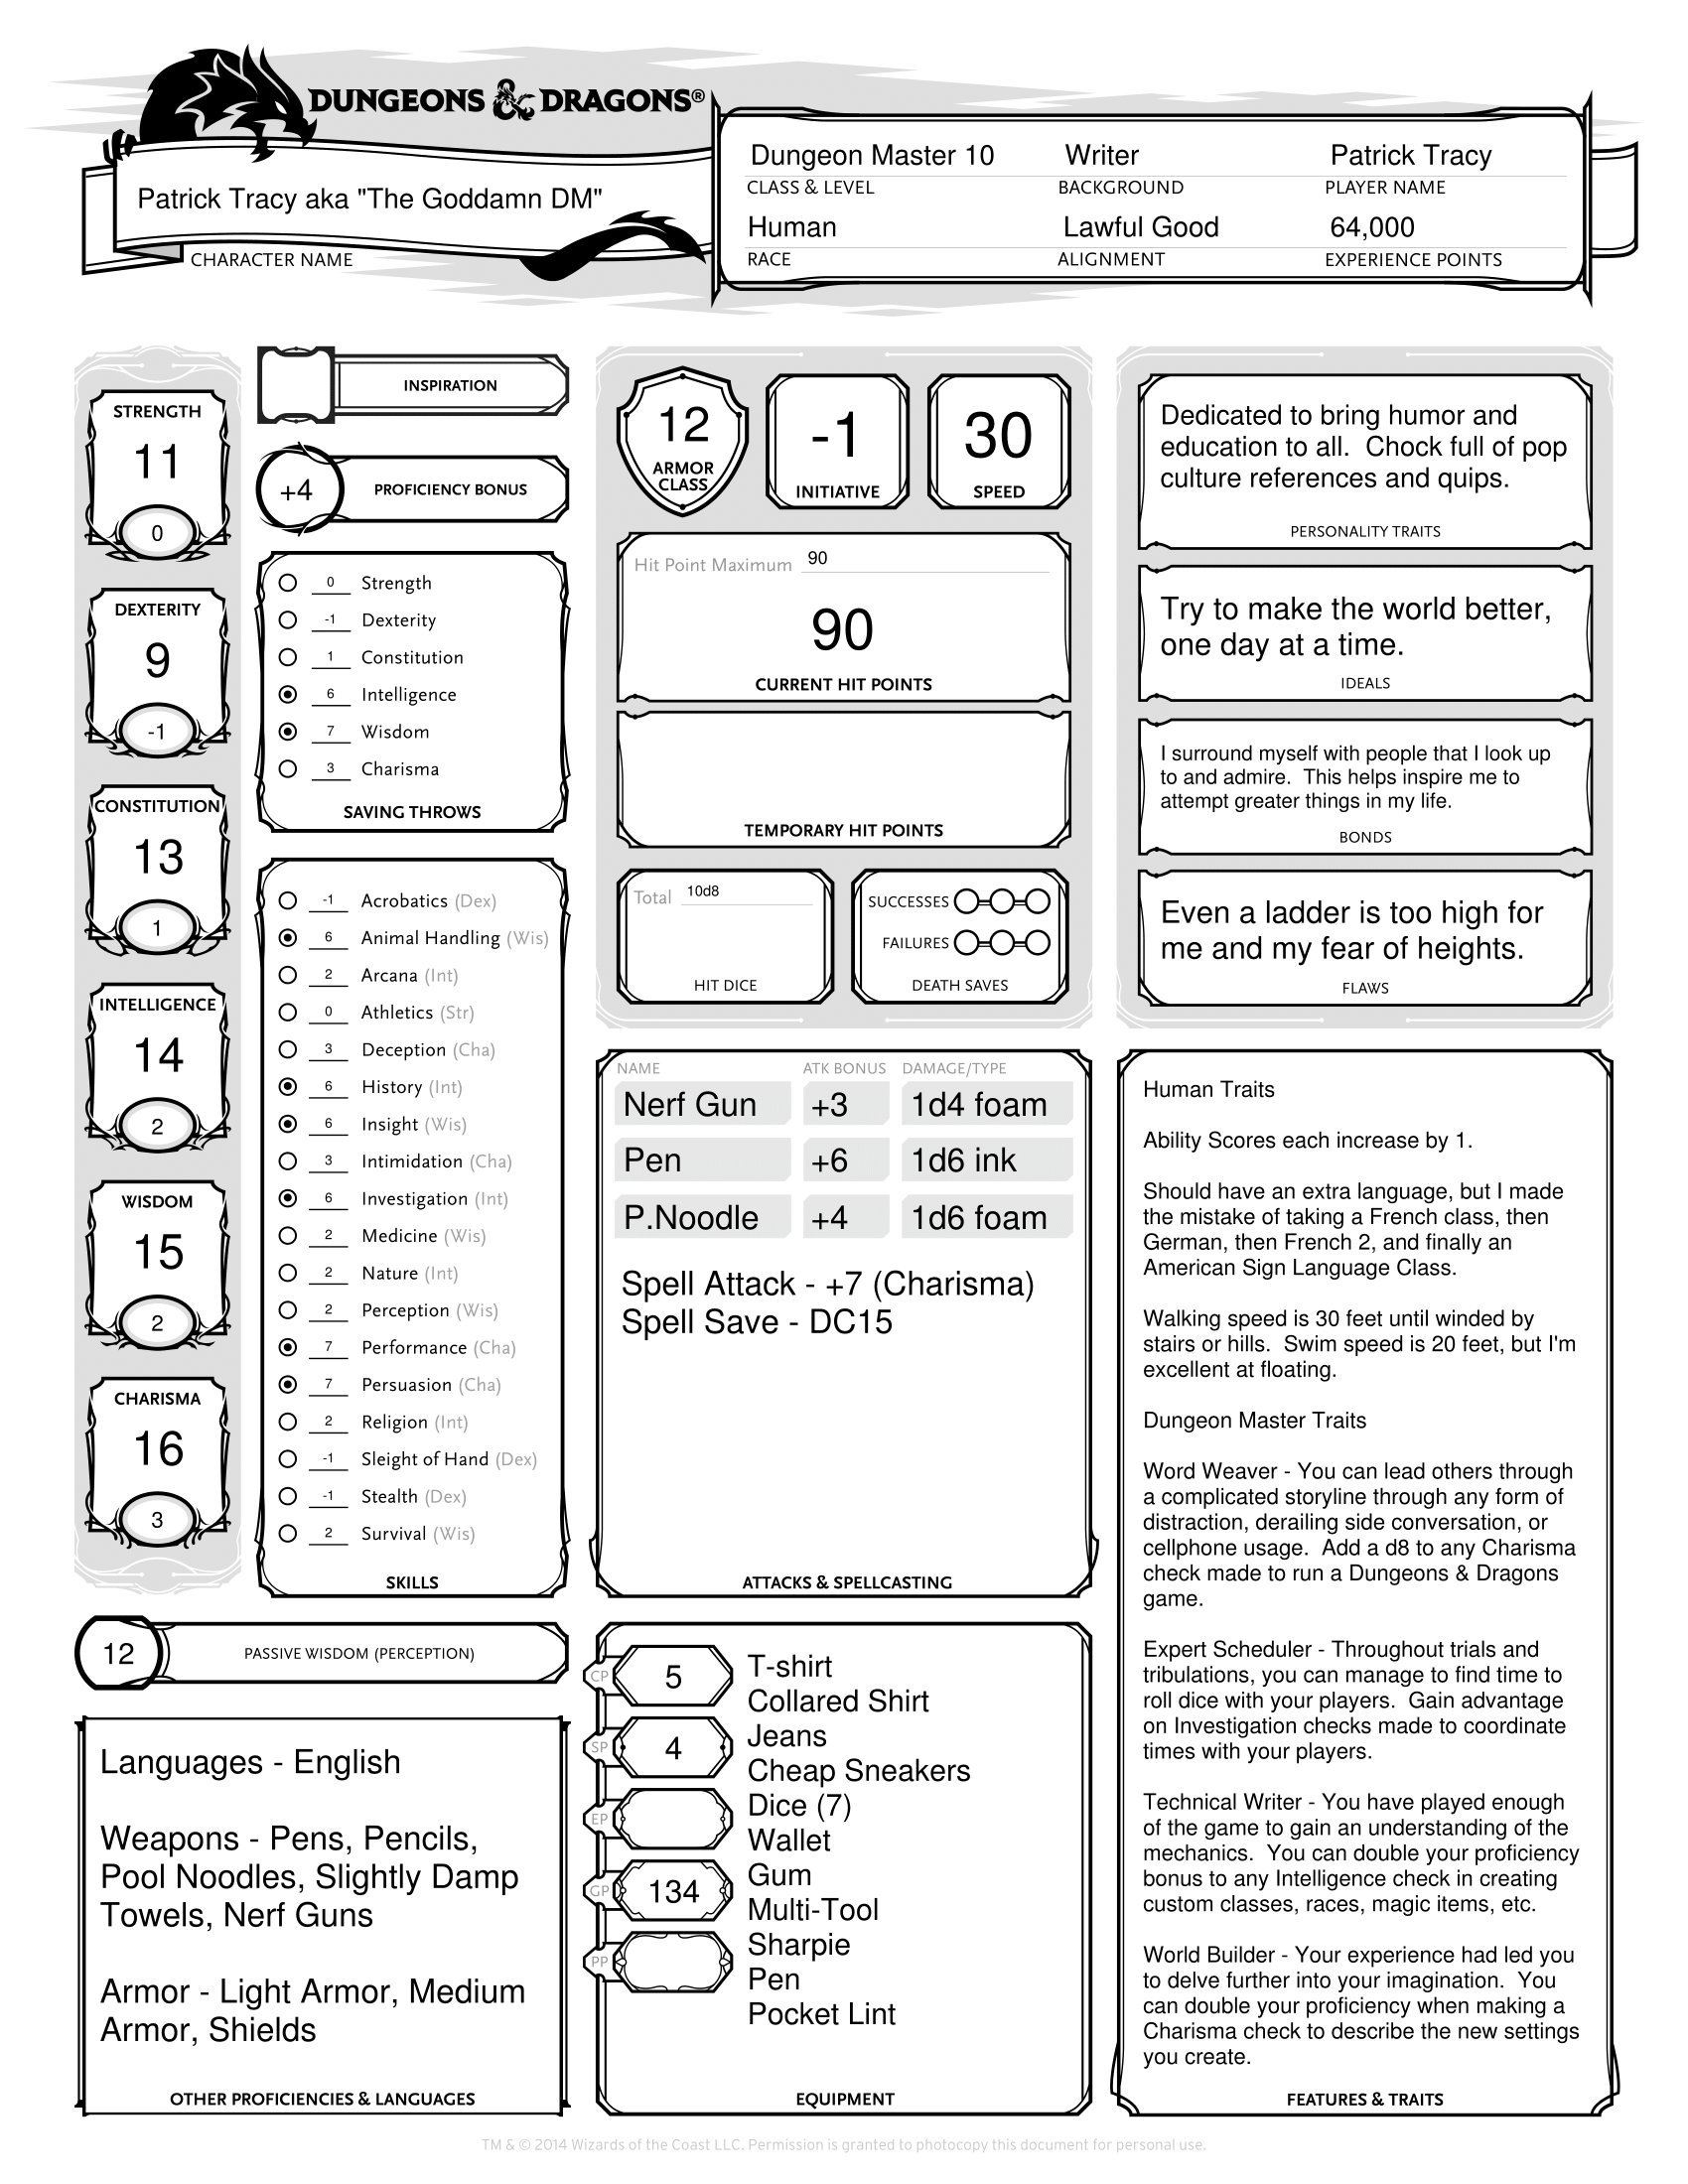 decided to apply for game designer job in fun way album on imgur character sheet resume Resume D&d Character Sheet Resume